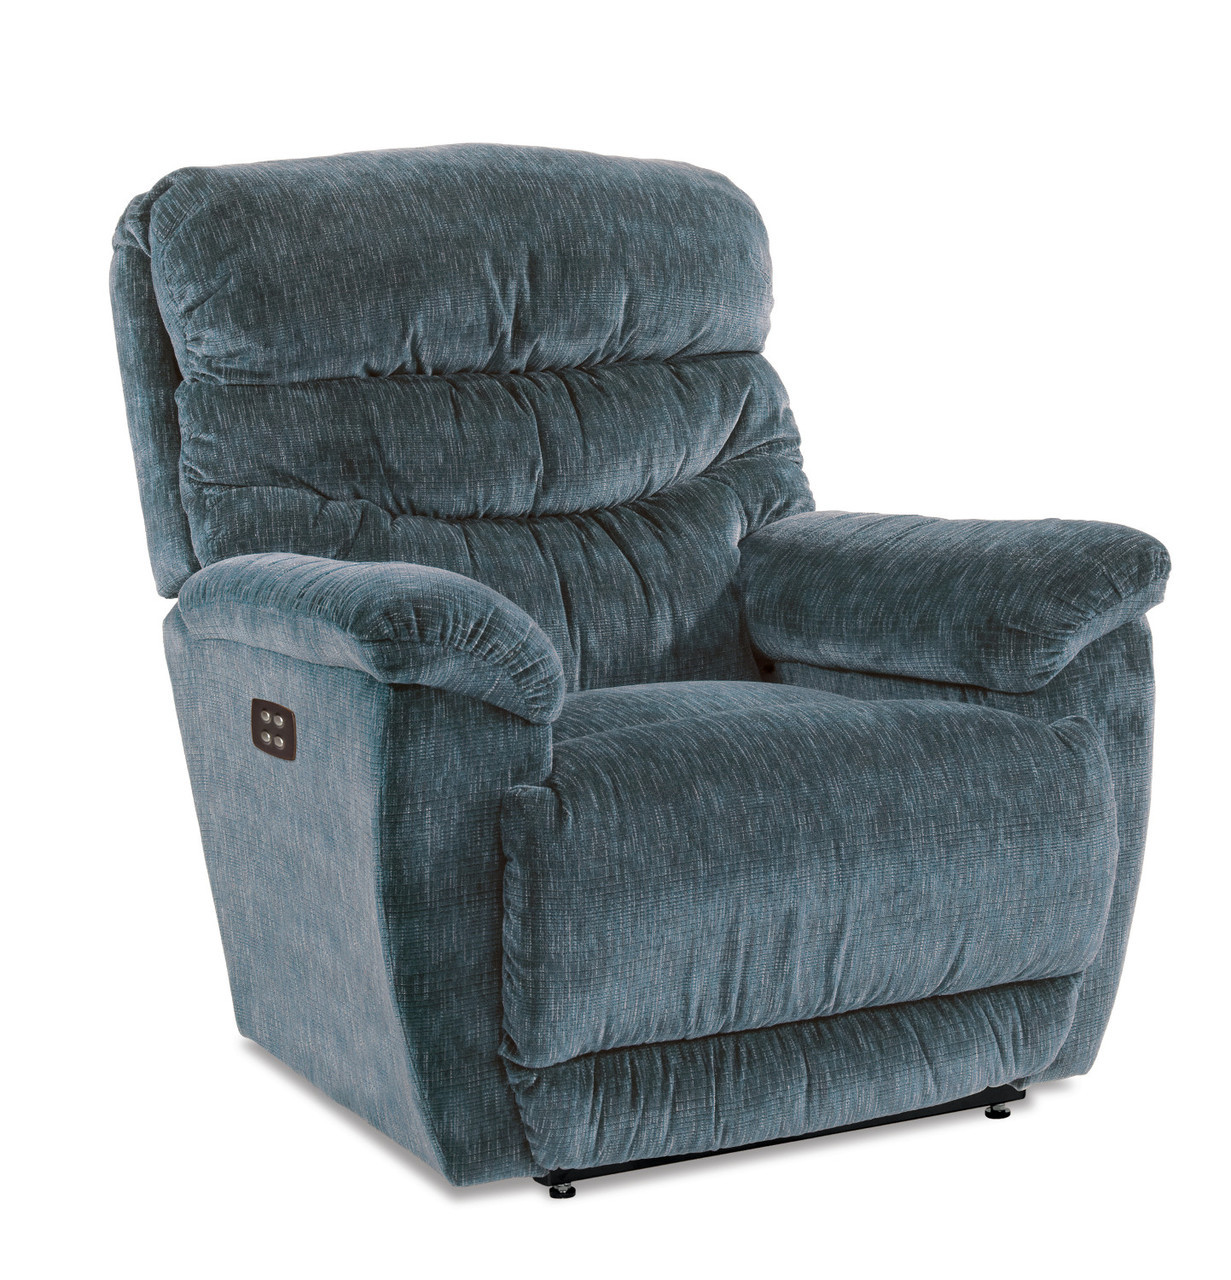 The Joshua Reclina Way Recliner Sold At Rose Brothers Furniture Serving Wilmington And